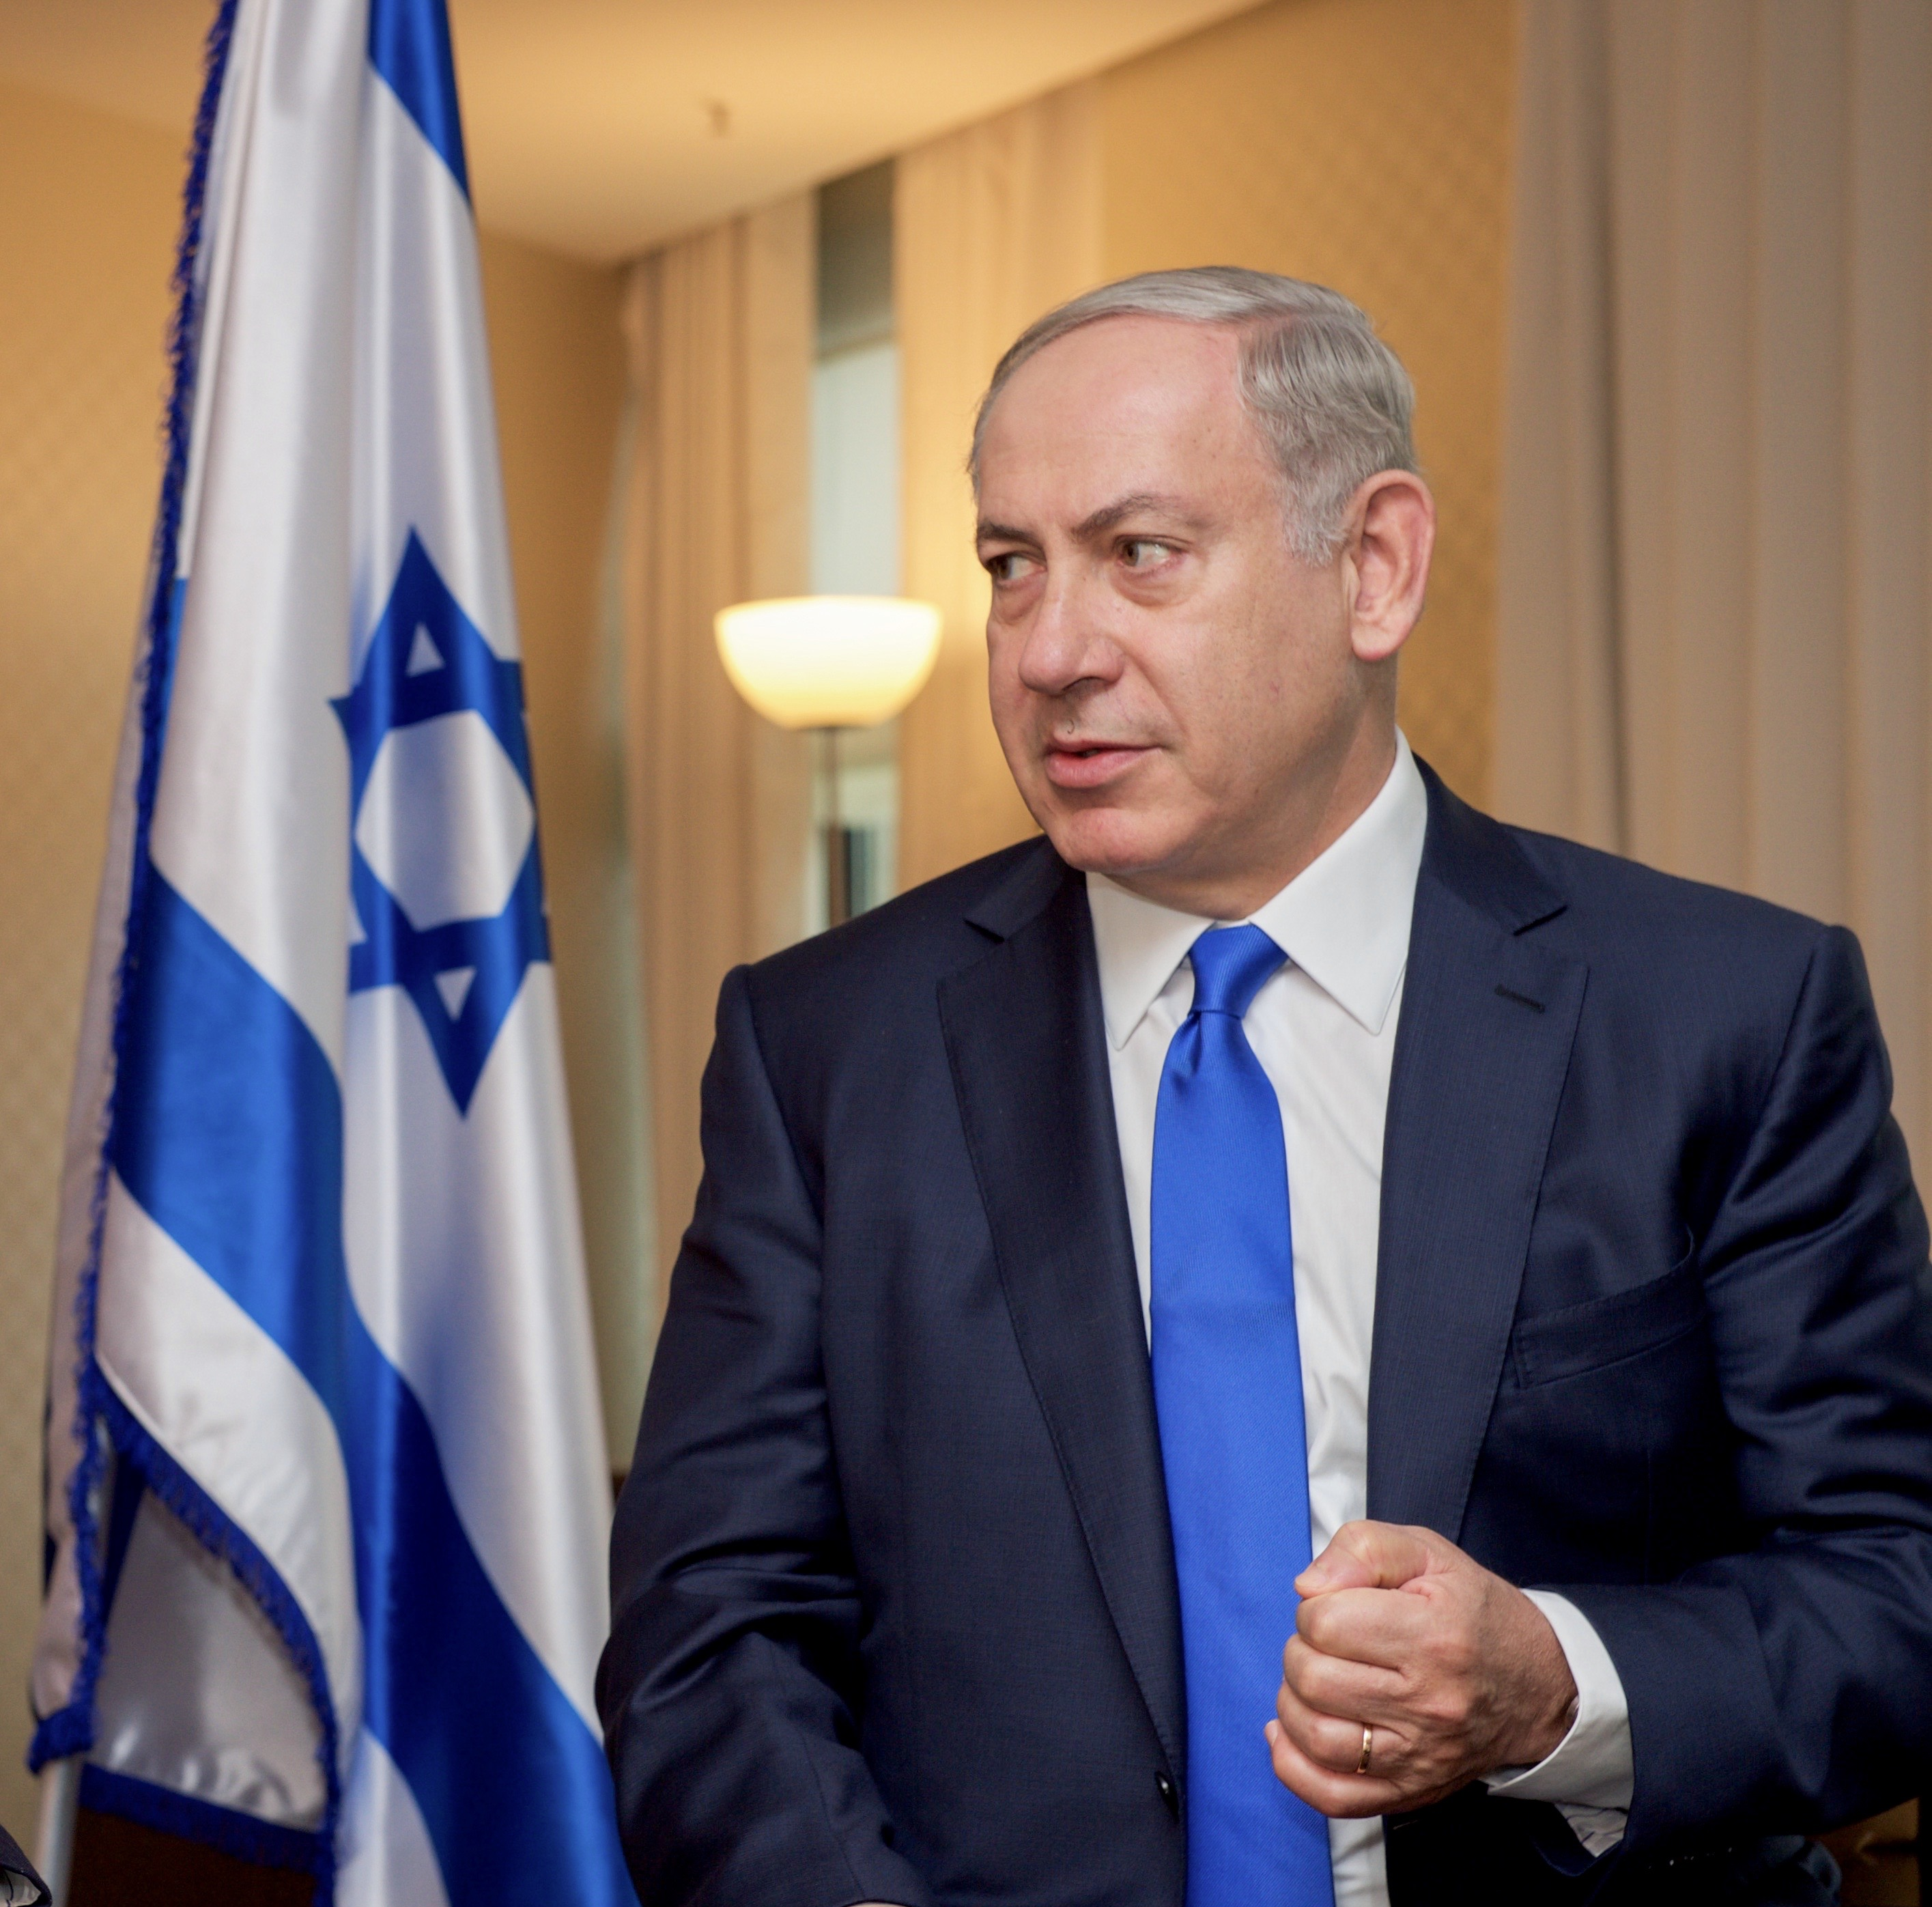 Israeli PM indicted with bribery, fraud and breach of trust charges